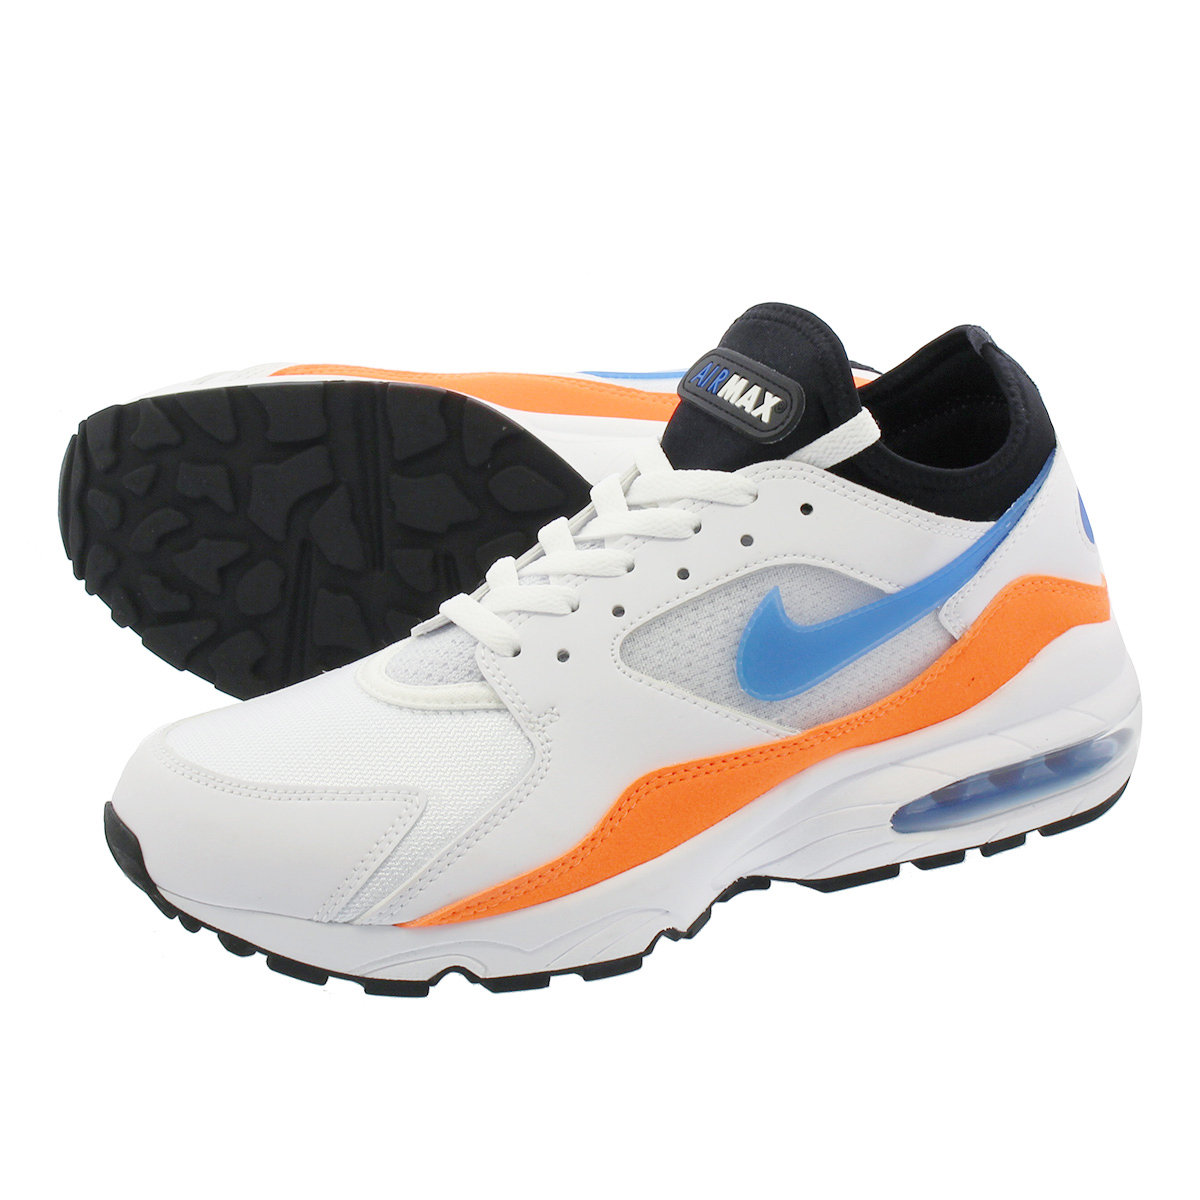 ae05e7a2411c NIKE AIR MAX 93 Kie Ney AMAX 93 WHITE BLUE NEBULA TOTAL ORANGE BLACK  306